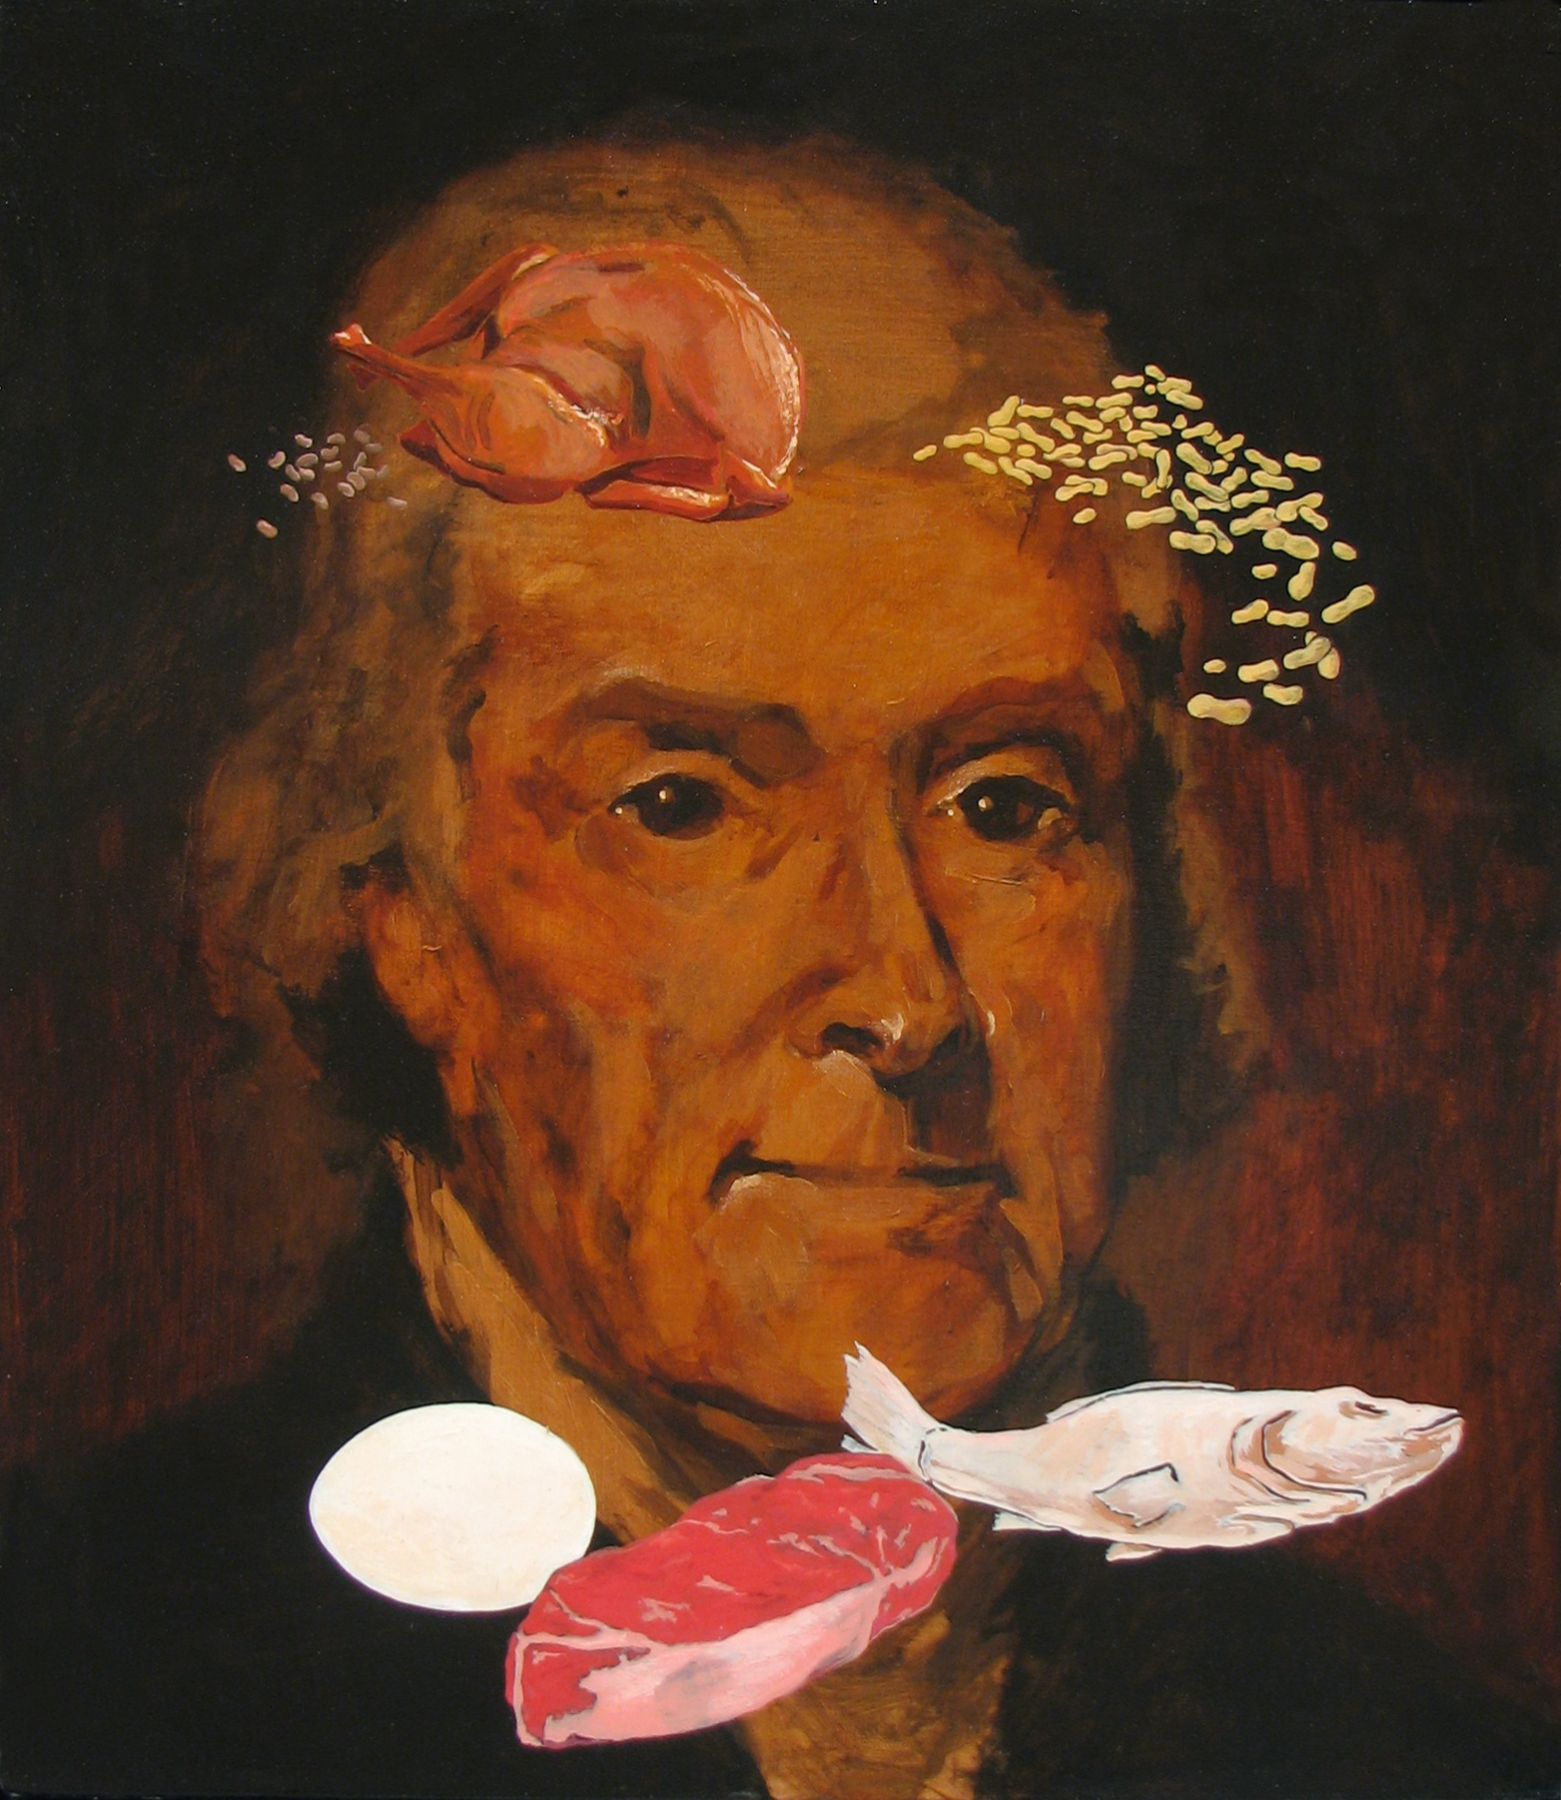 ADAM MYSOCK Jefferson's Meat, Poultry, Fish, Dried Beans, Eggs, and Nuts, 2009